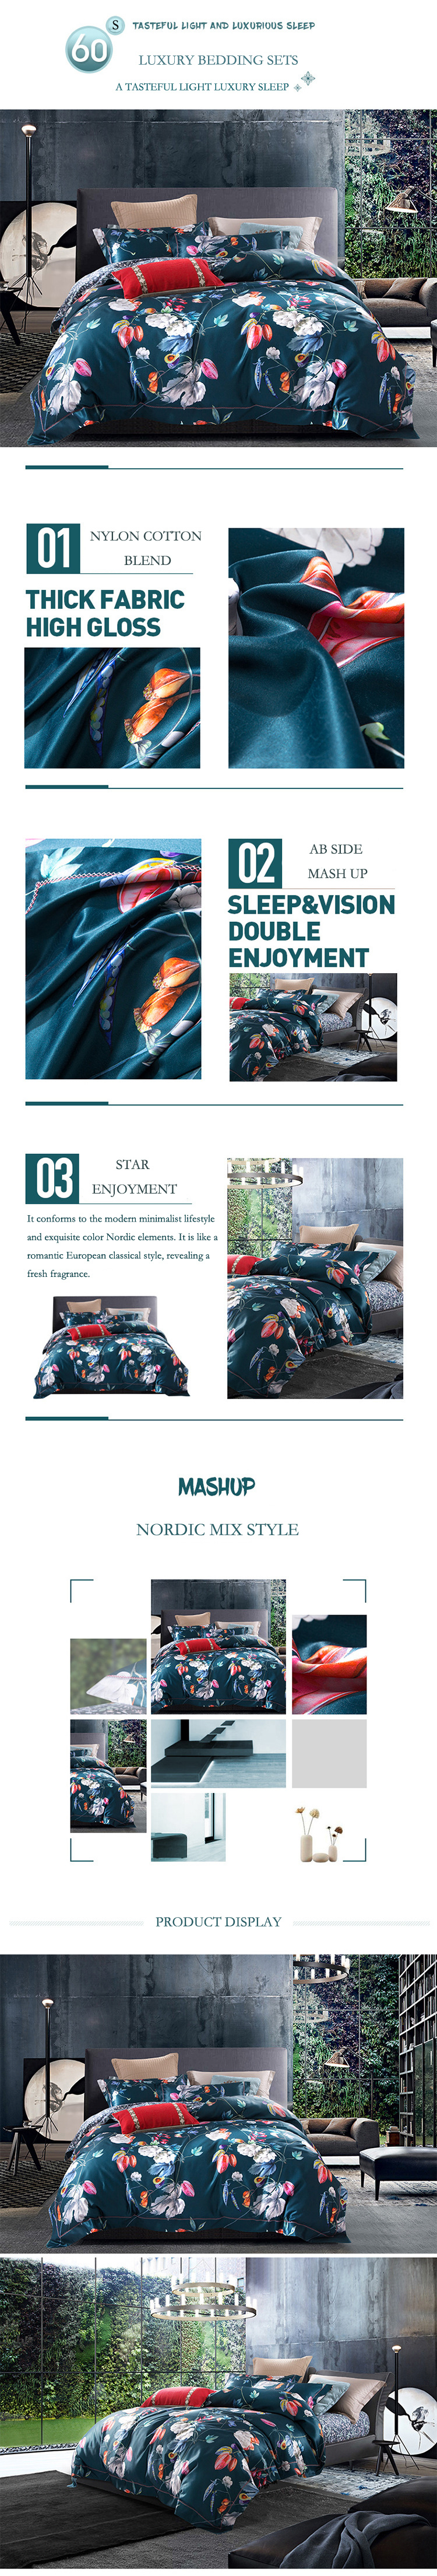 queen comforter bedding sets parure de lit adulte beddengoed Nordic retro duvet cover cotton bed sheets dekbed overtrek bed linen 01